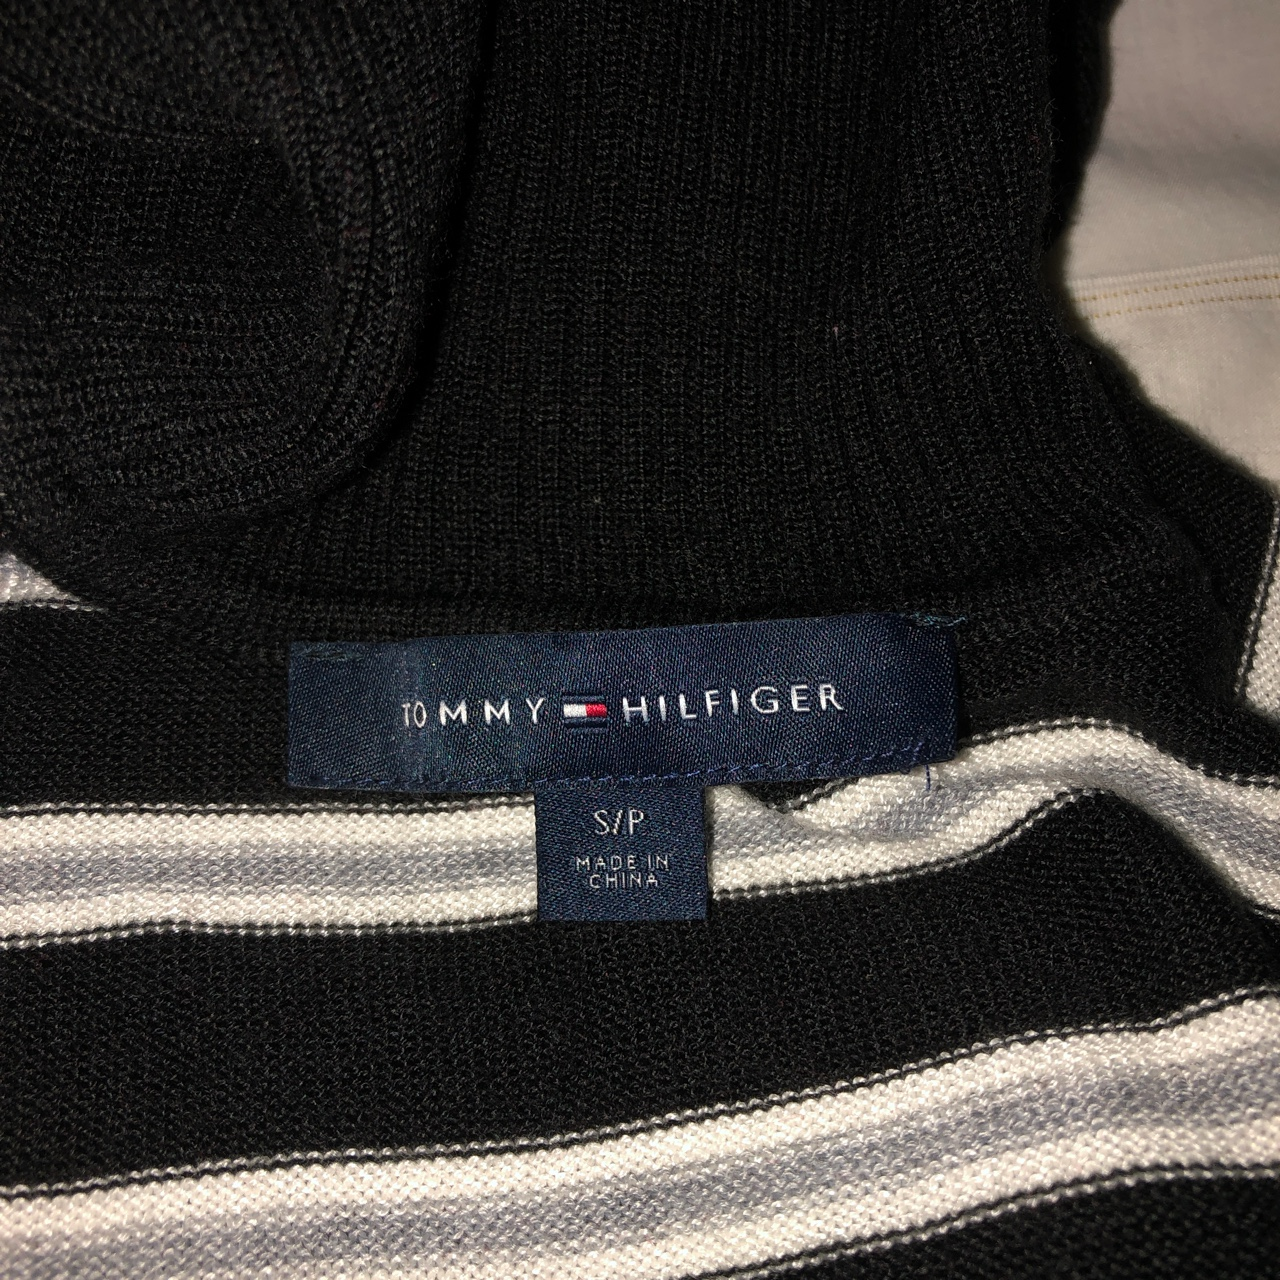 Tommy Hilfiger black and white striped 3/4 quarter sleeve